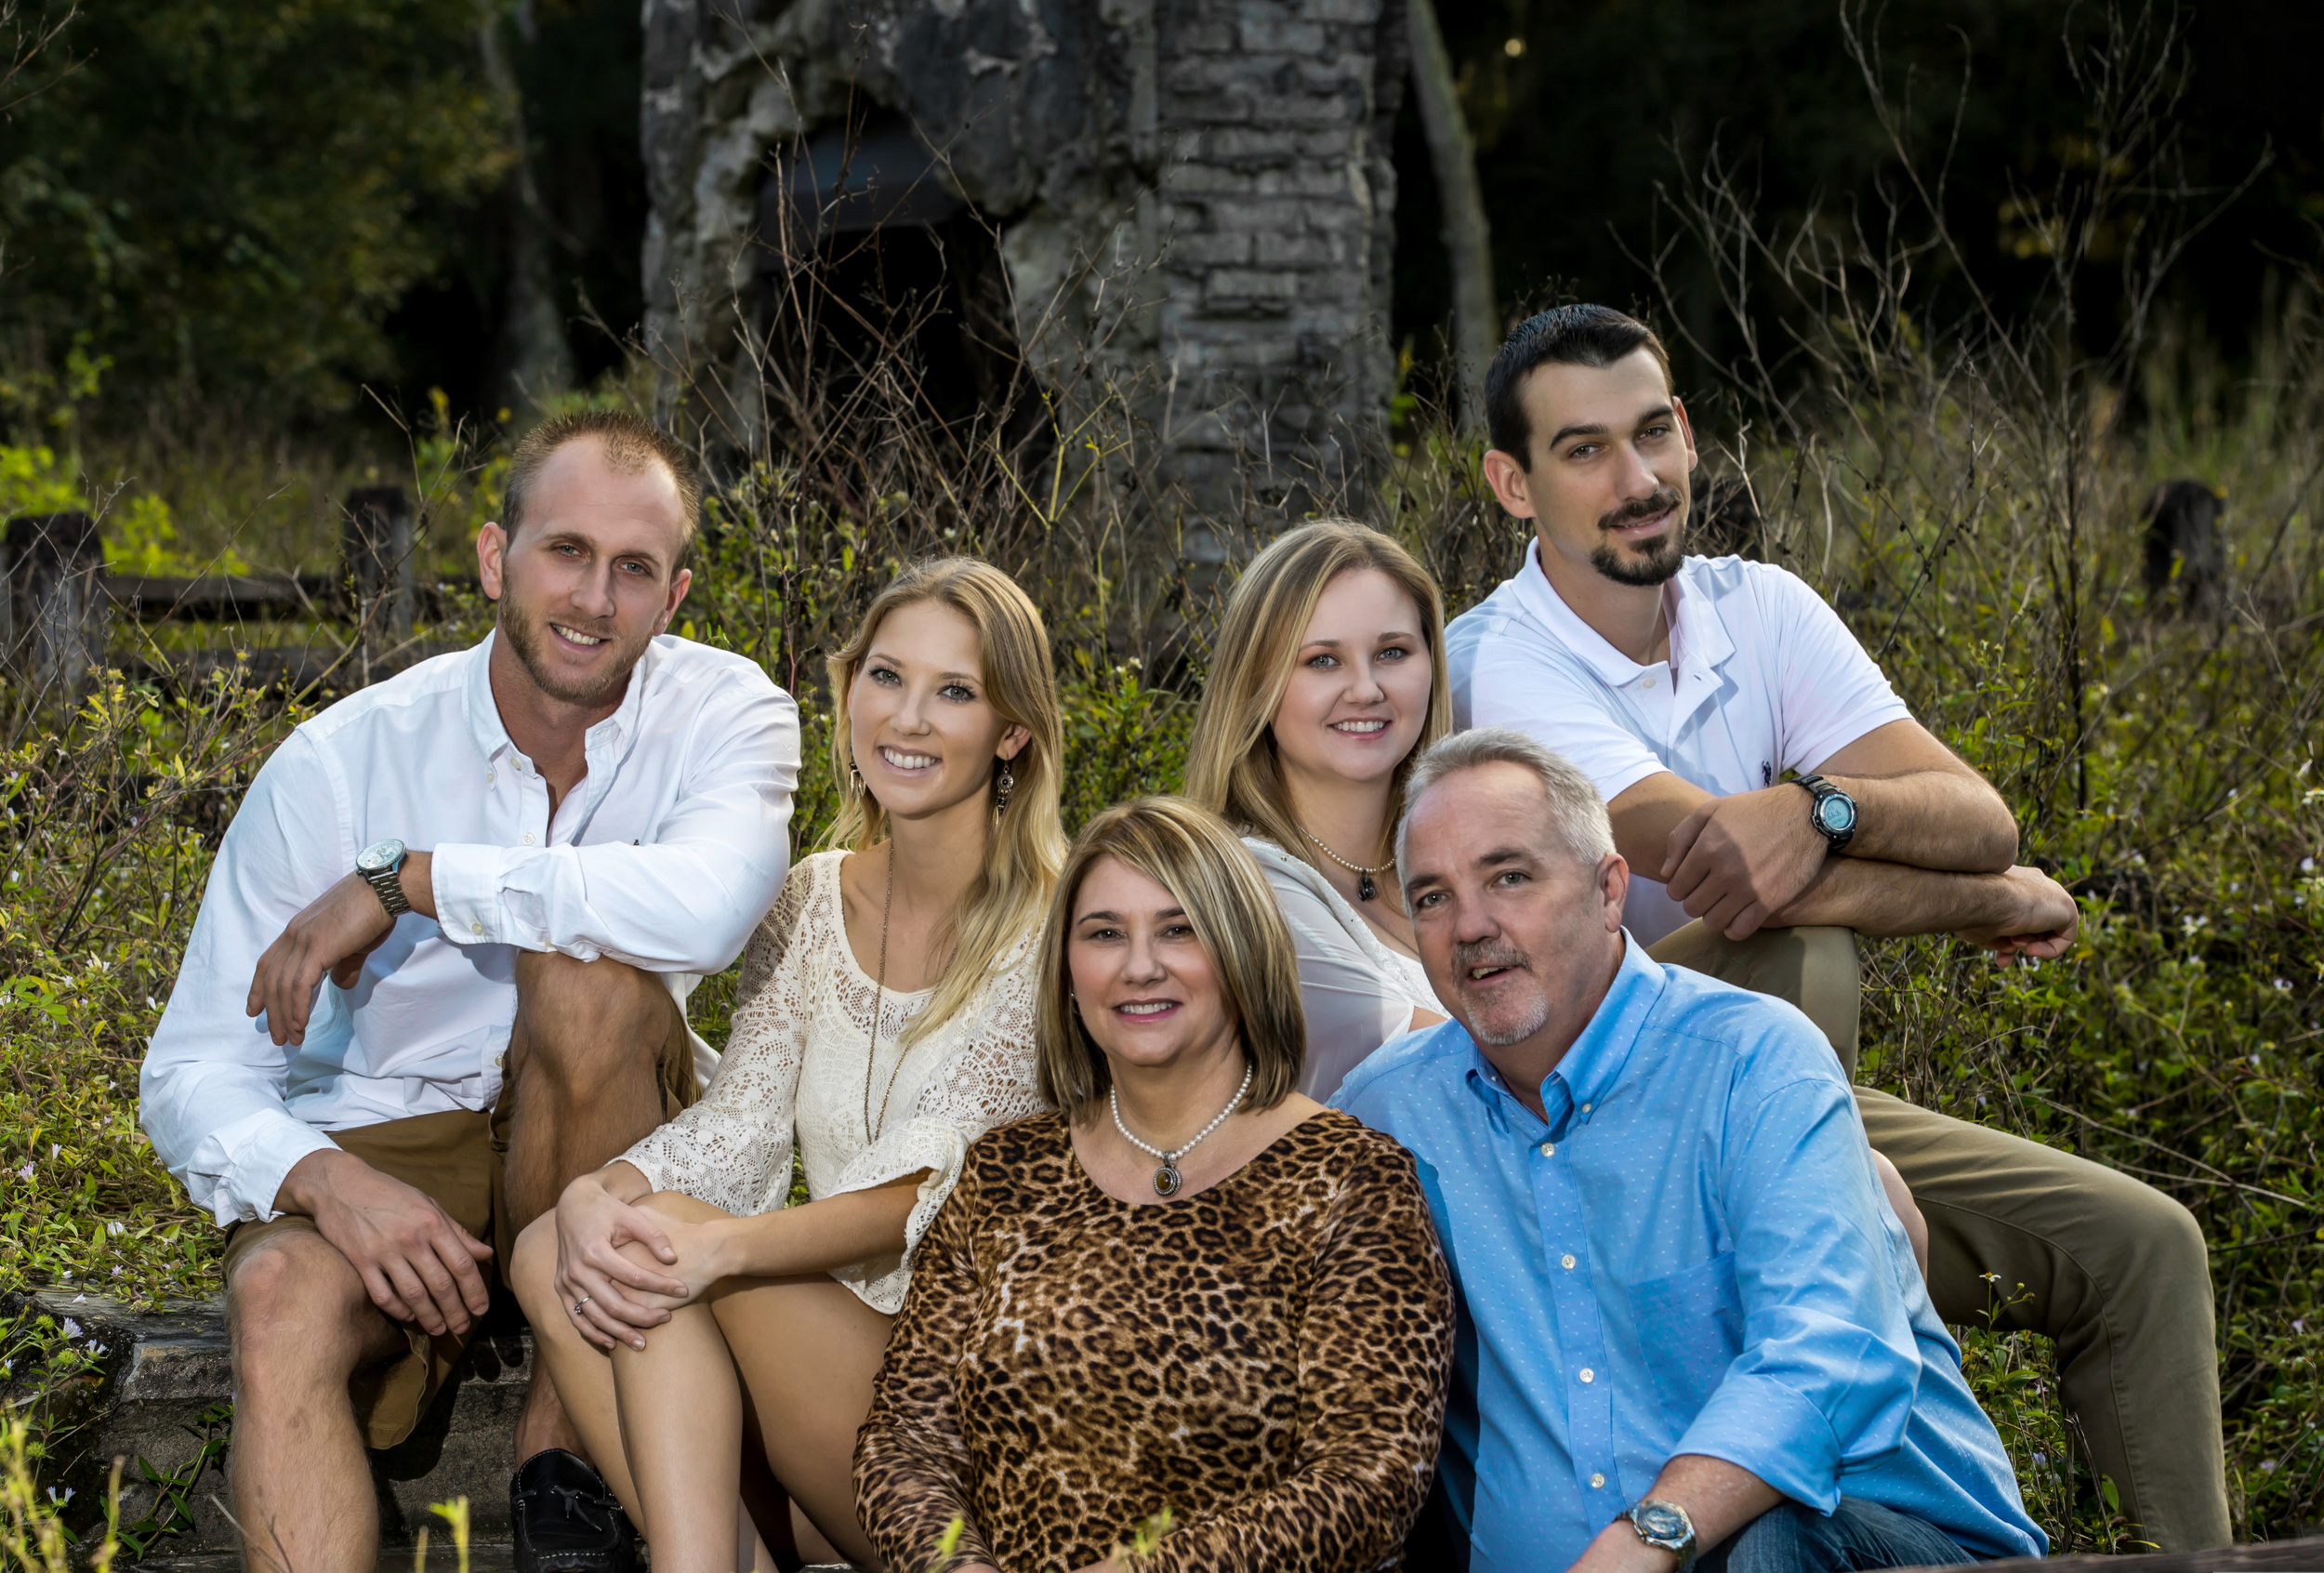 Family Group Chimney Sharp QN9A2278 retouched.jpg